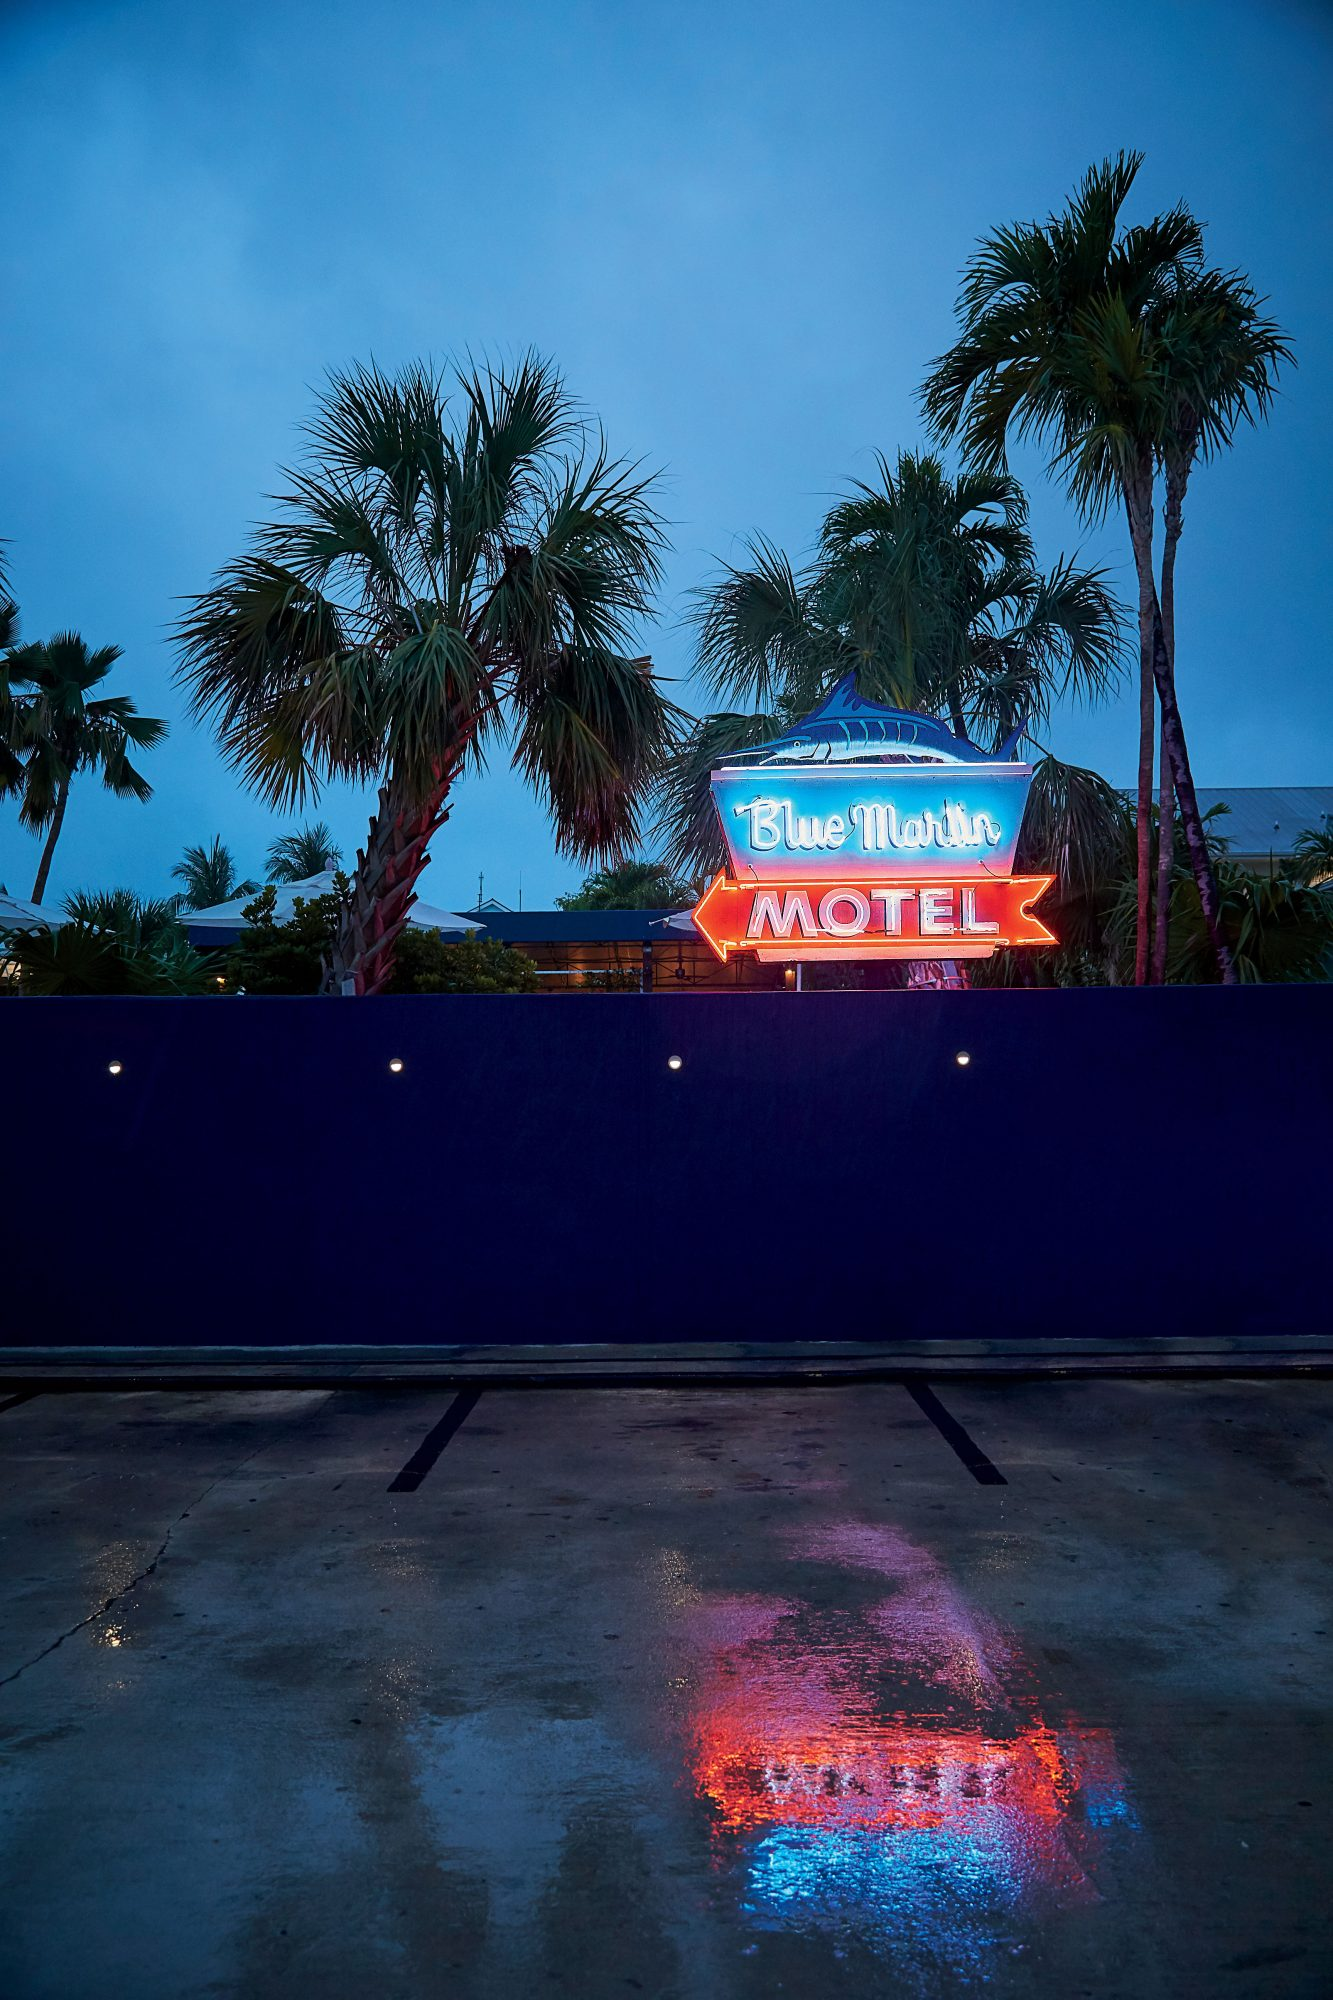 Blue Marlin Motel in Key West